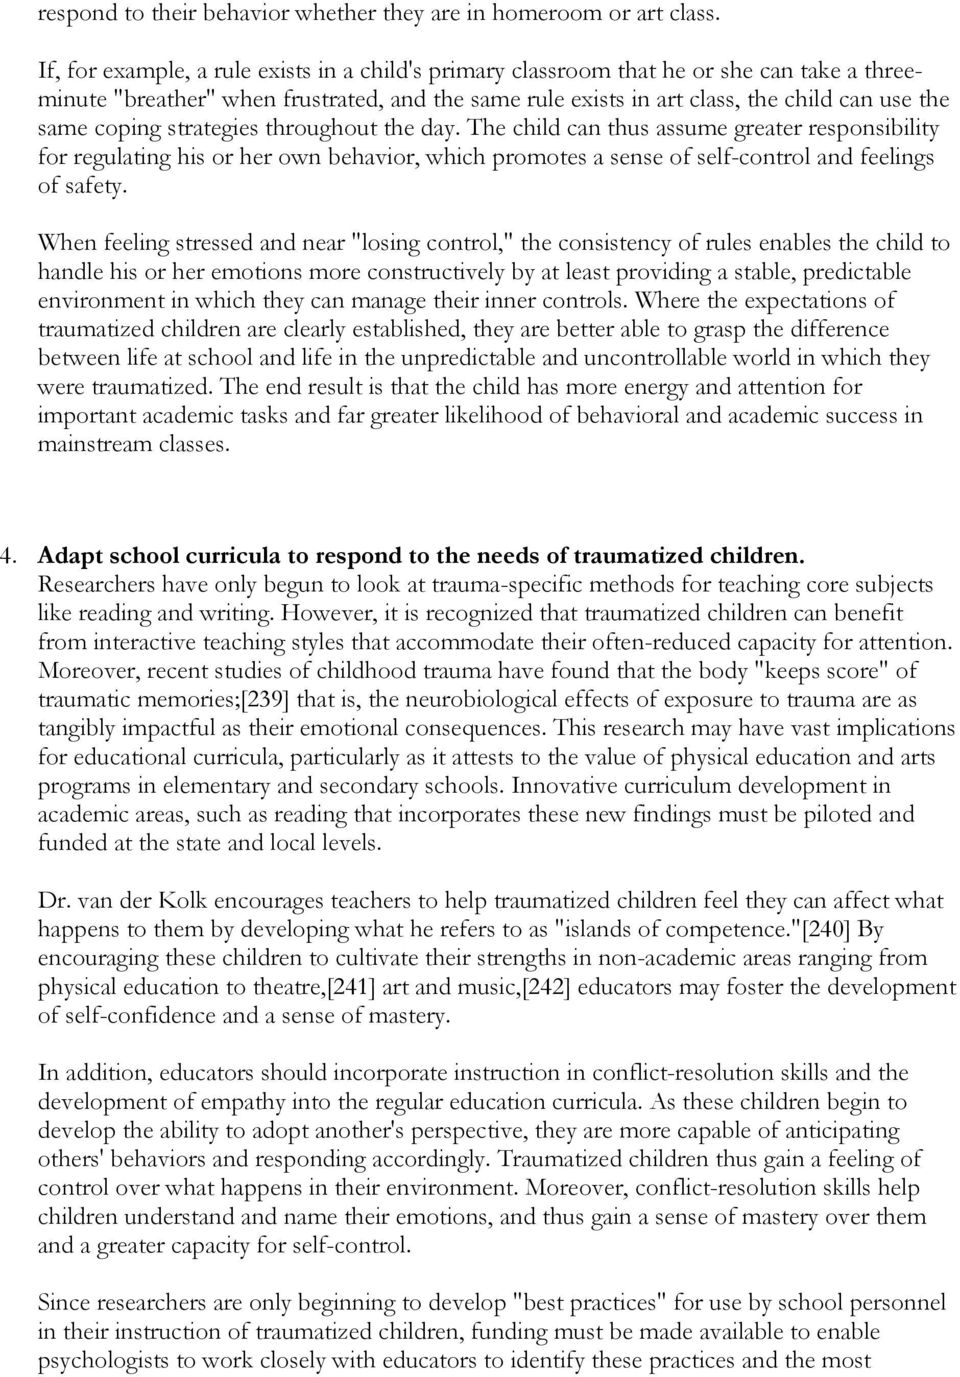 coping strategies throughout the day. The child can thus assume greater responsibility for regulating his or her own behavior, which promotes a sense of self-control and feelings of safety.